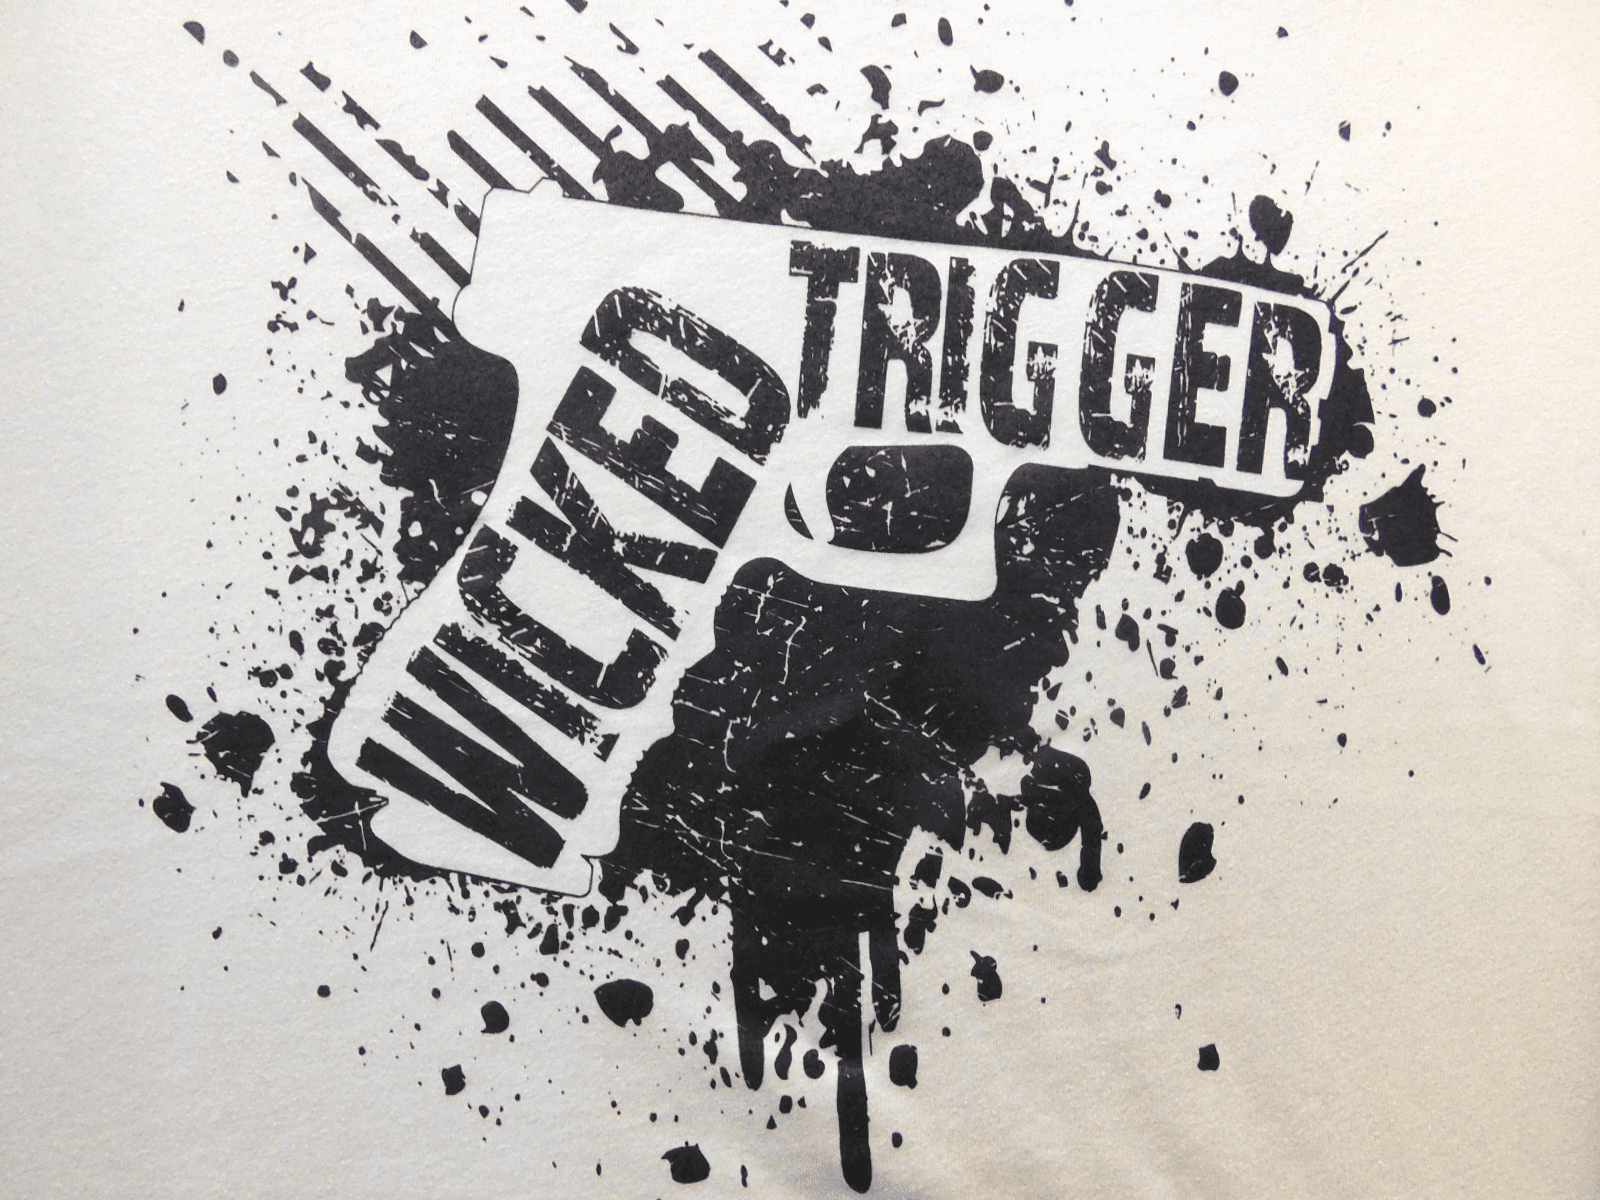 Wicked Trigger Firearms Sand (S/M/L/XL/2X/3X)